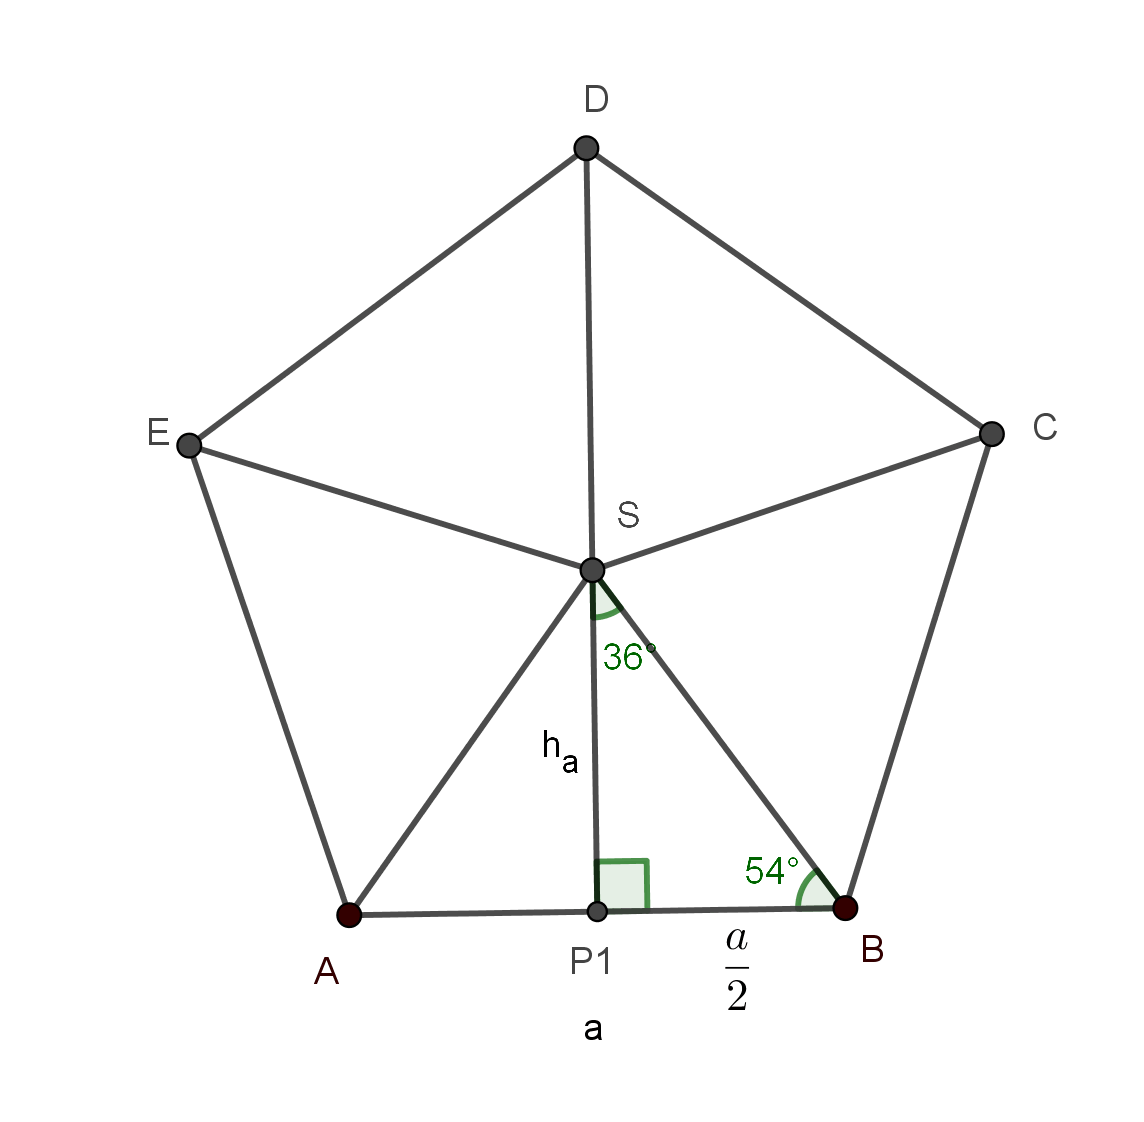 Angles Areas And Diagonals Of Regular Polygons In